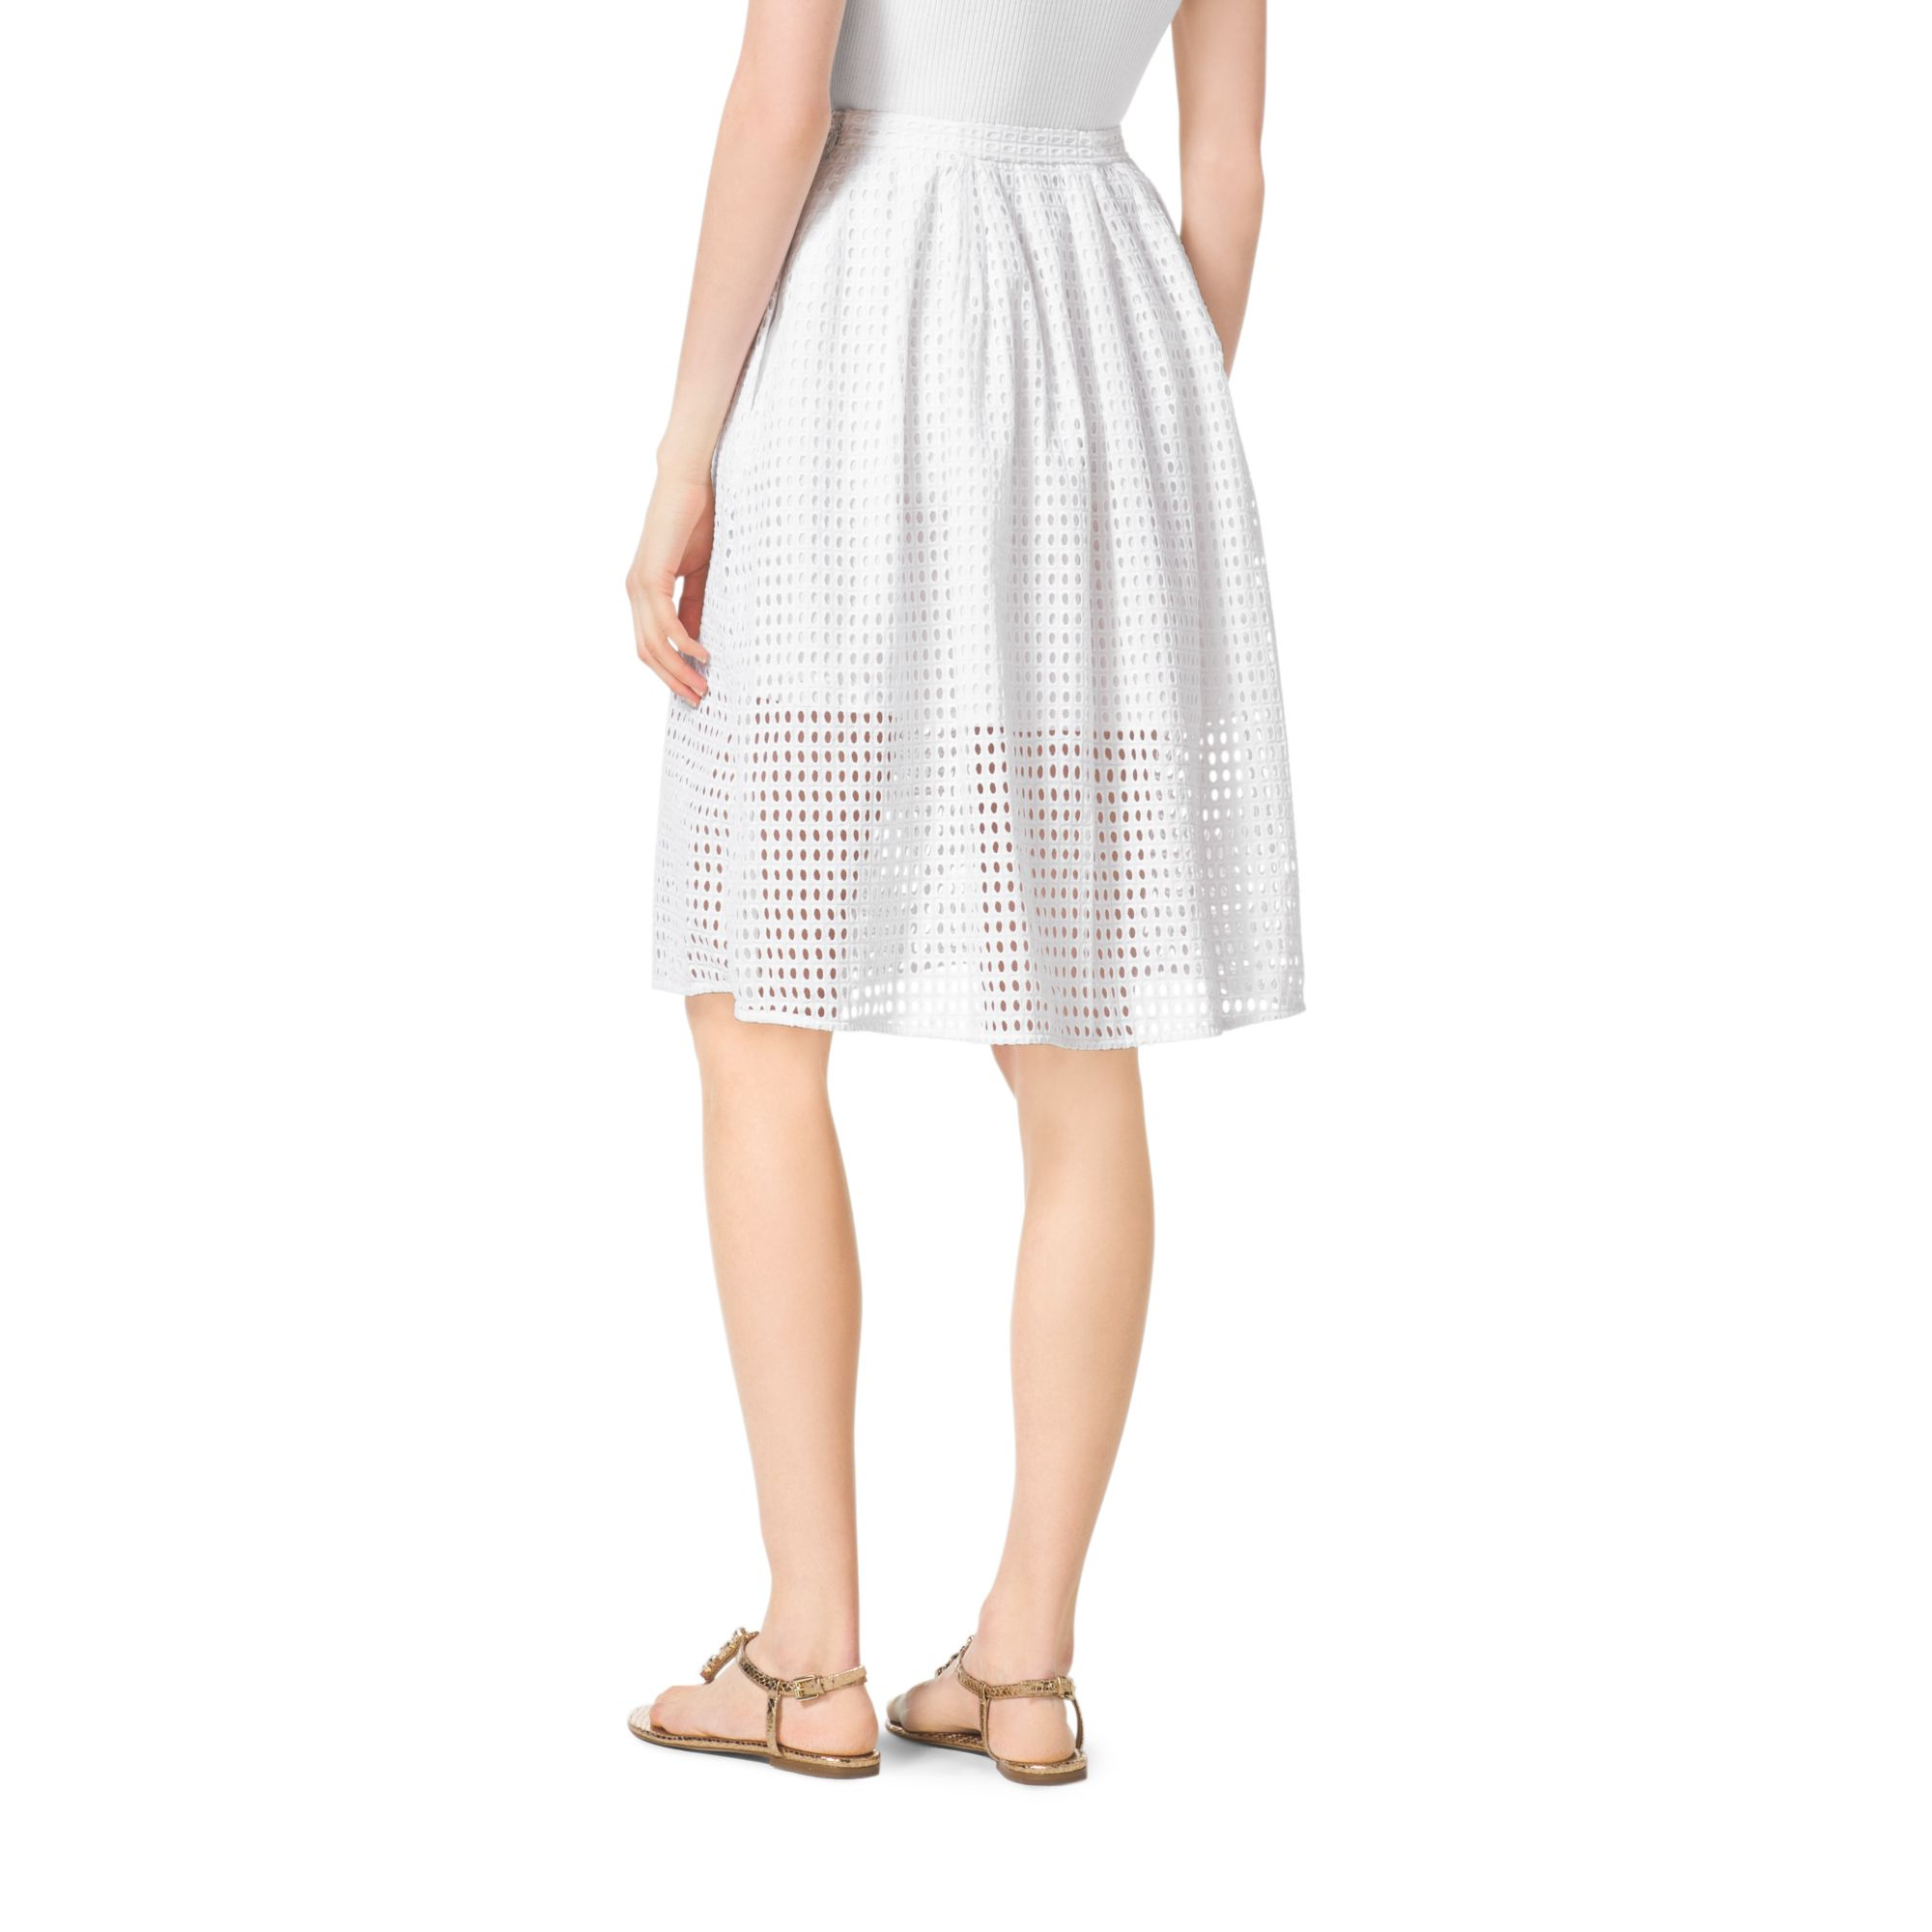 Michael kors Eyelet Skirt in White | Lyst